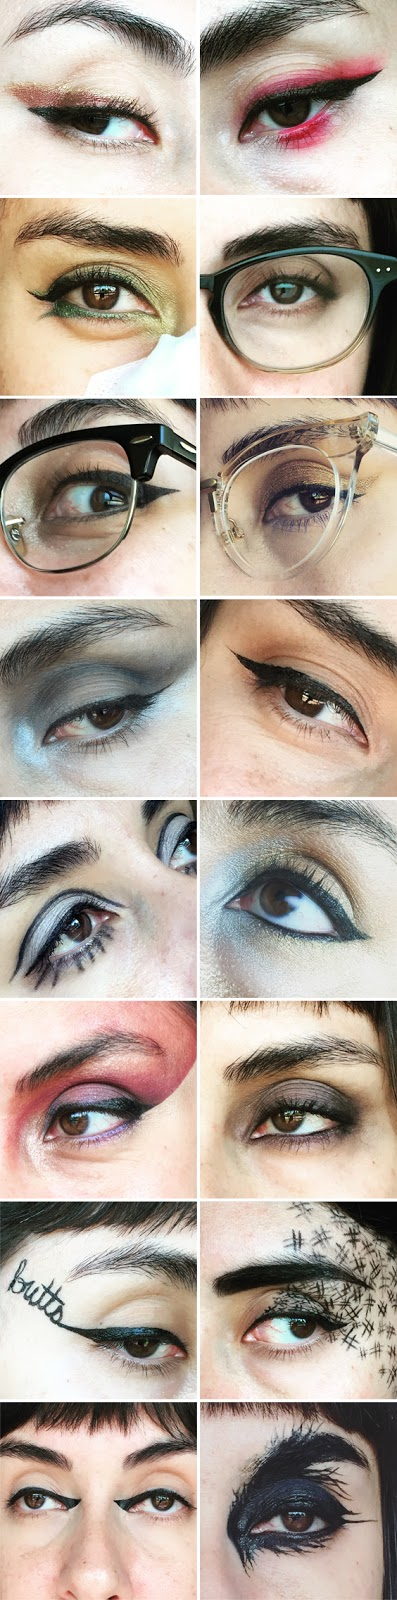 16 Eyeliner Looks :: 31 Days of Liquid Eyeliner